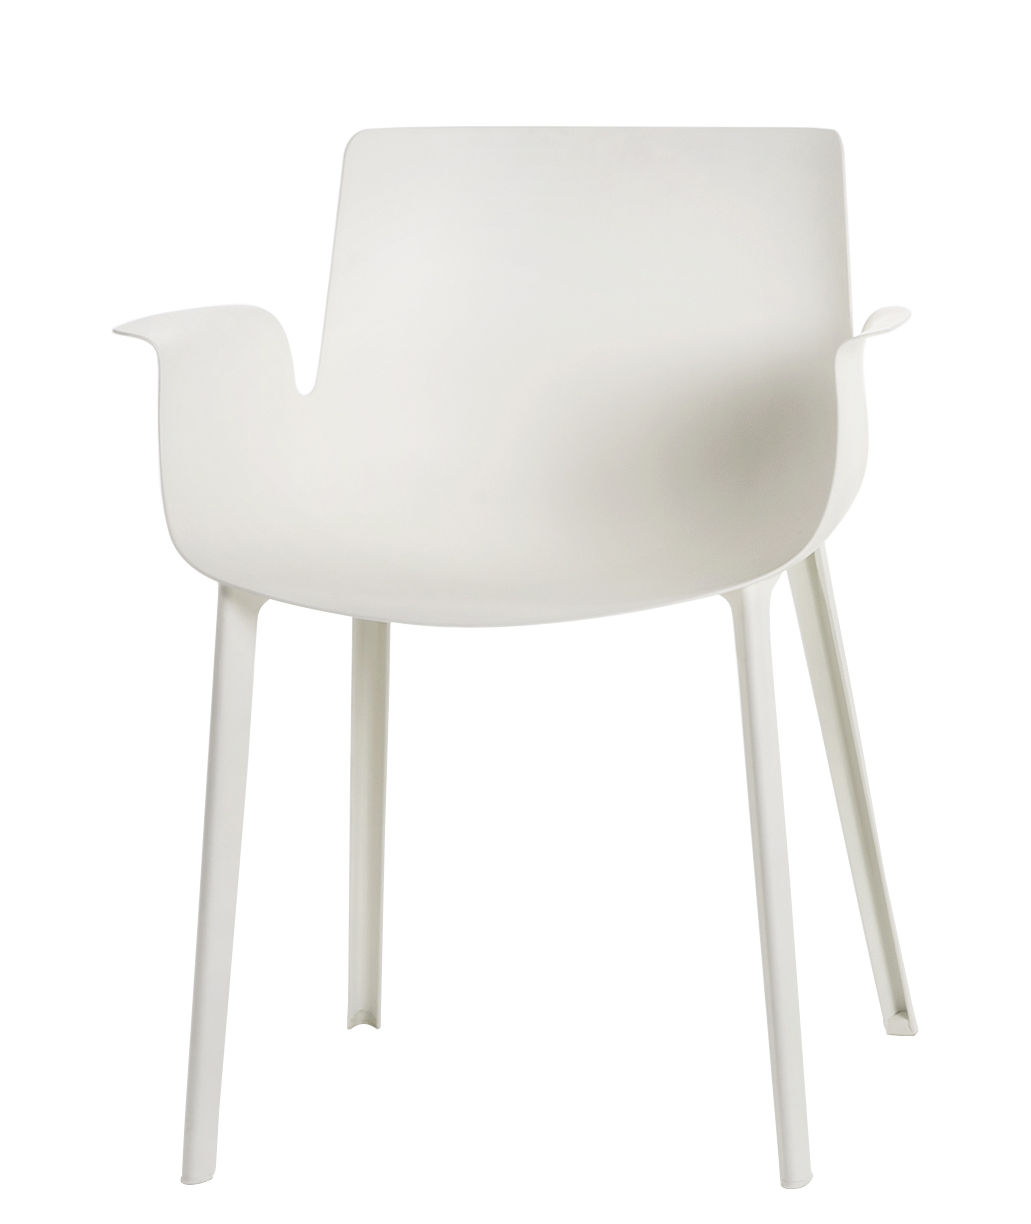 Furniture - Chairs - Piuma Armchair - Plastic by Kartell - White - Reinforecd thermoplastic polymer